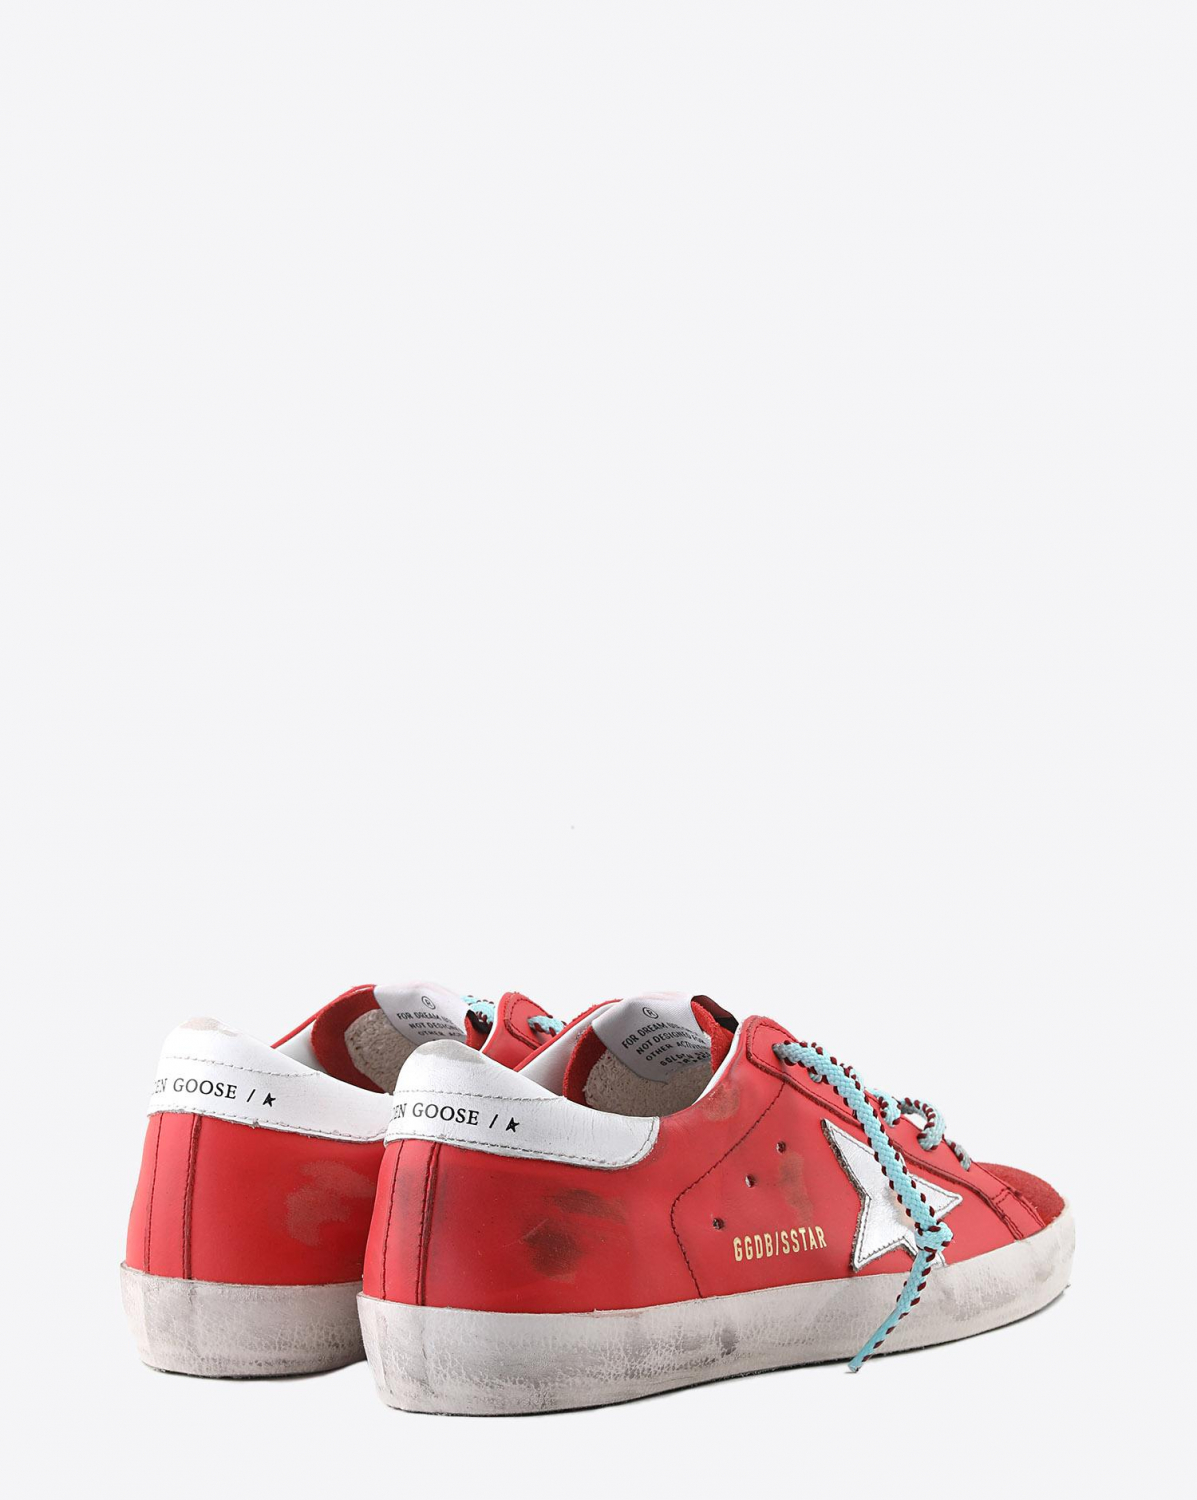 Golden Goose Woman Collection Sneakers Superstar - Cherry Leather - Silver Star